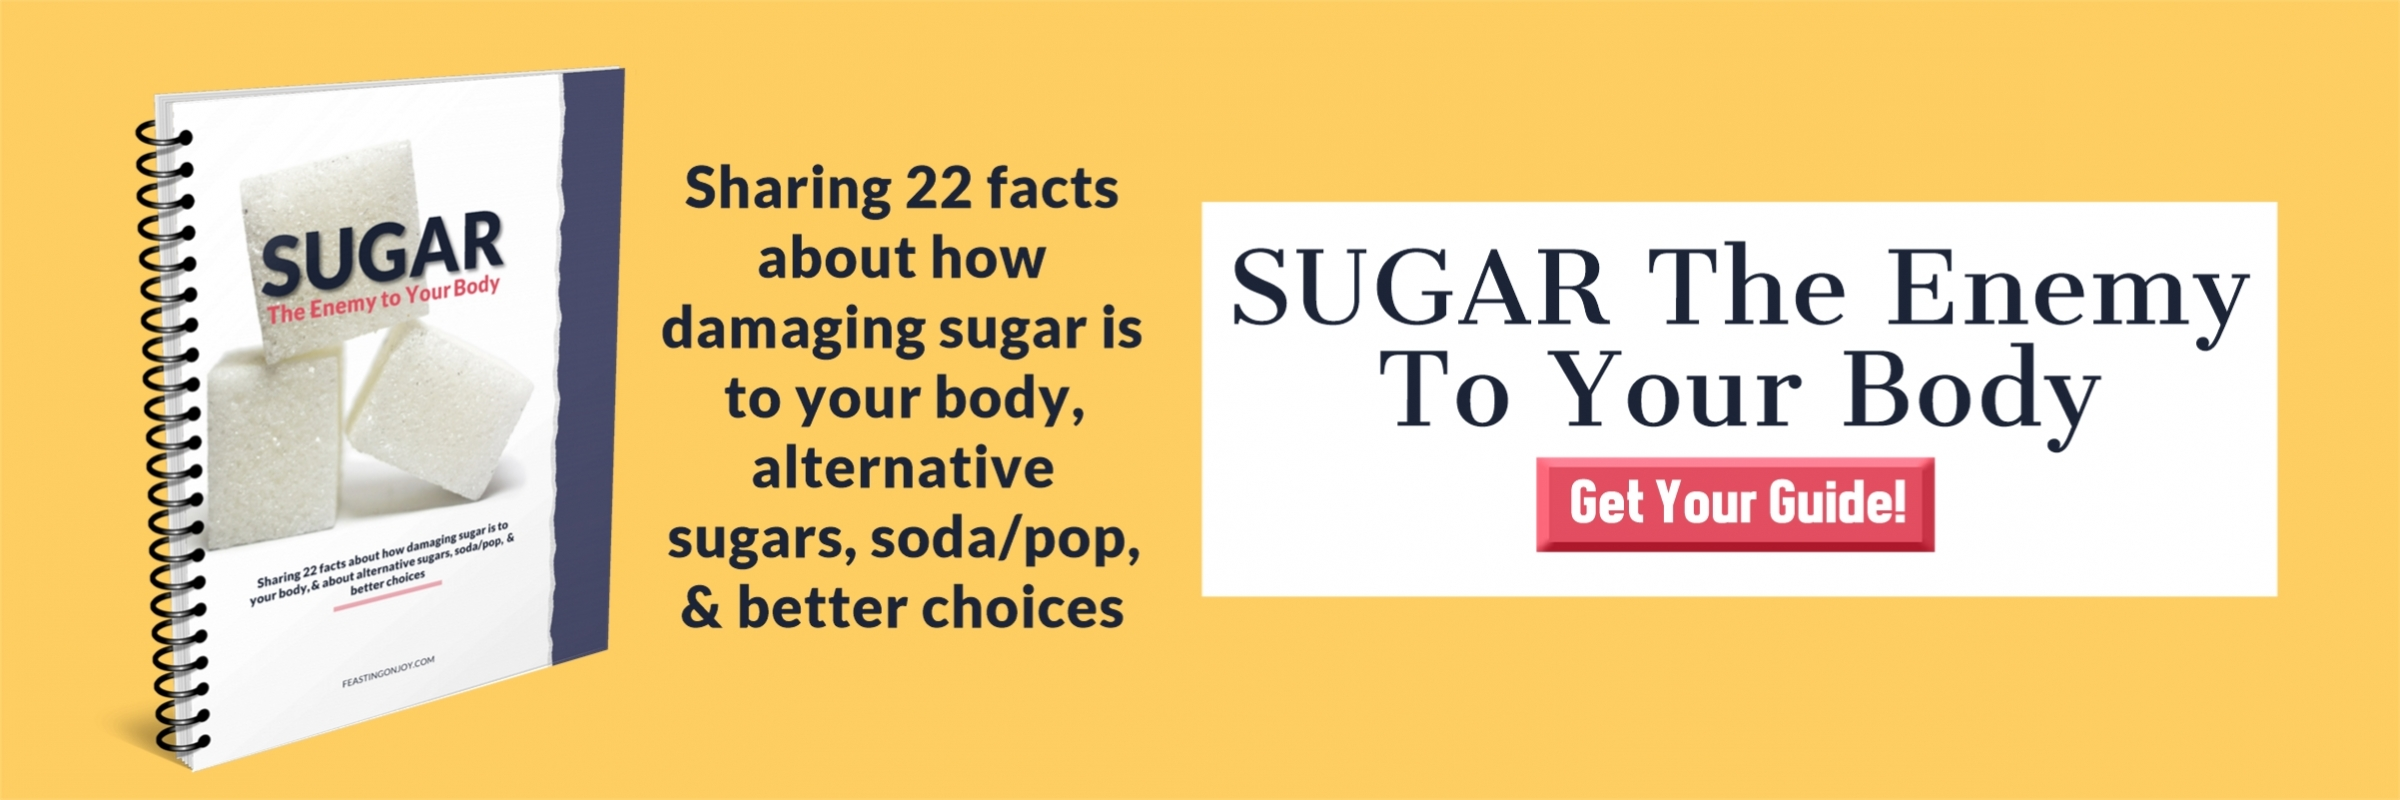 Sugar The Enemy to Your Body | Better Choices Guide